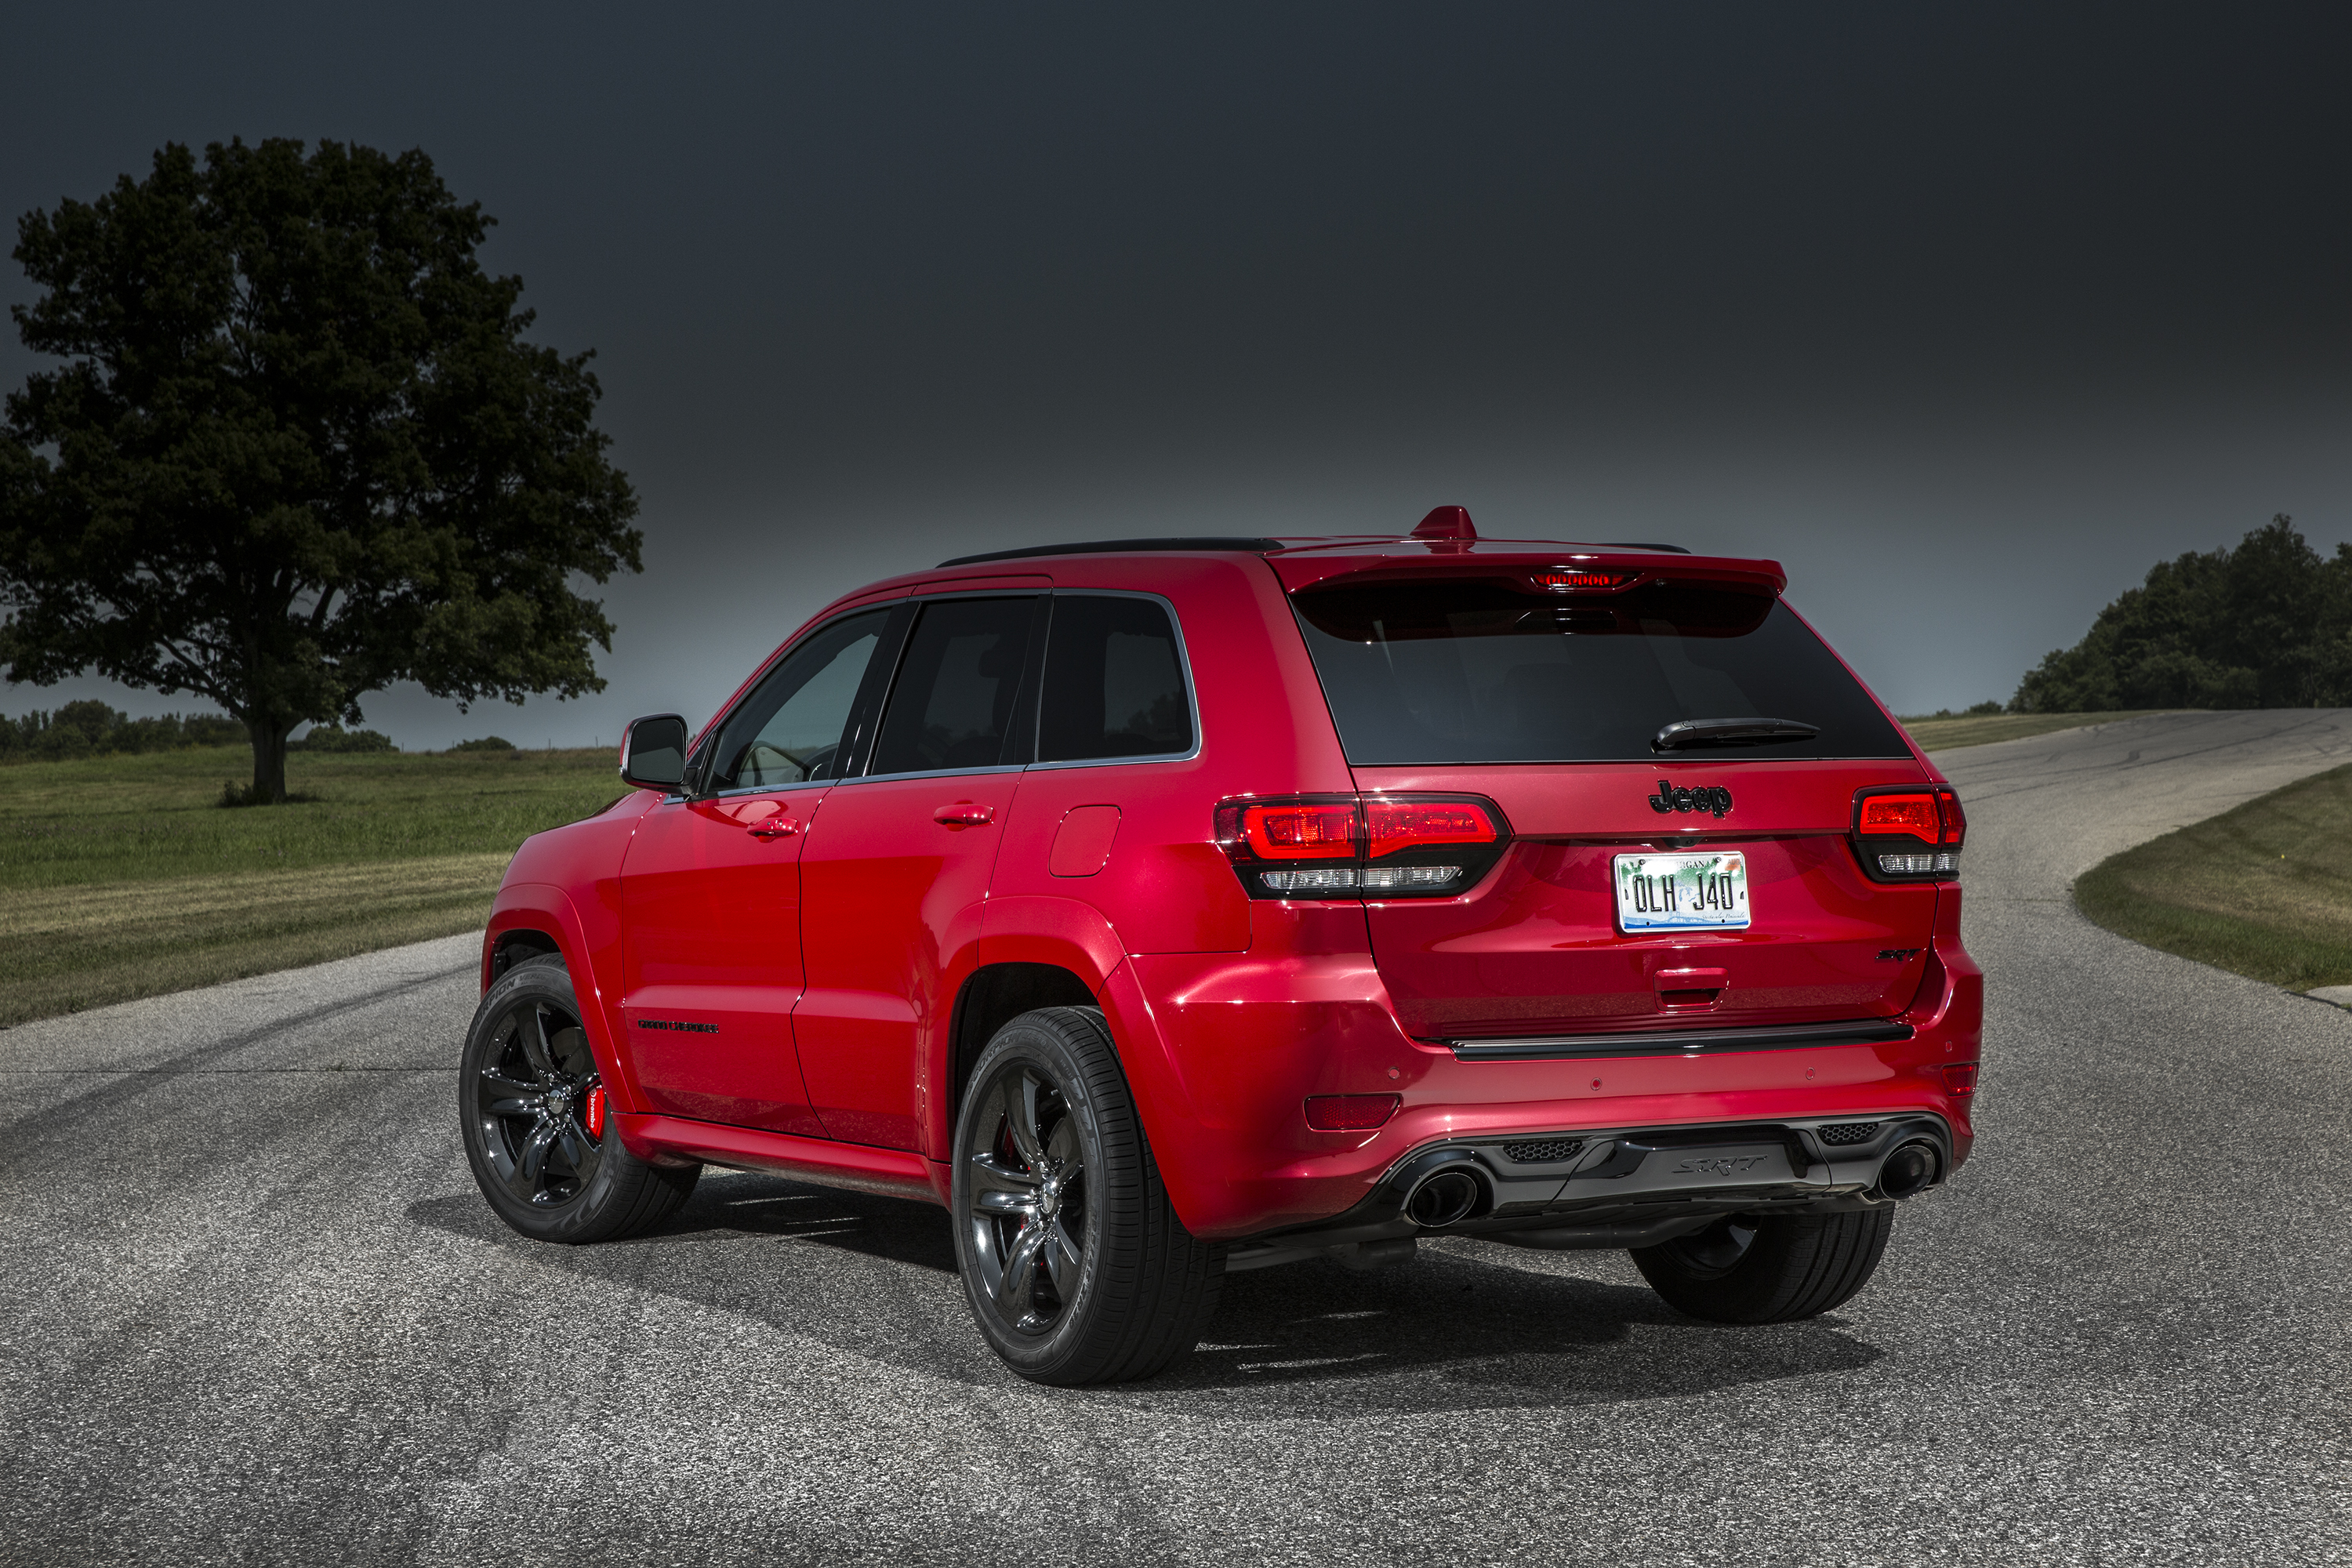 2015 jeep grand cherokee srt is no hellcat autoevolution. Black Bedroom Furniture Sets. Home Design Ideas